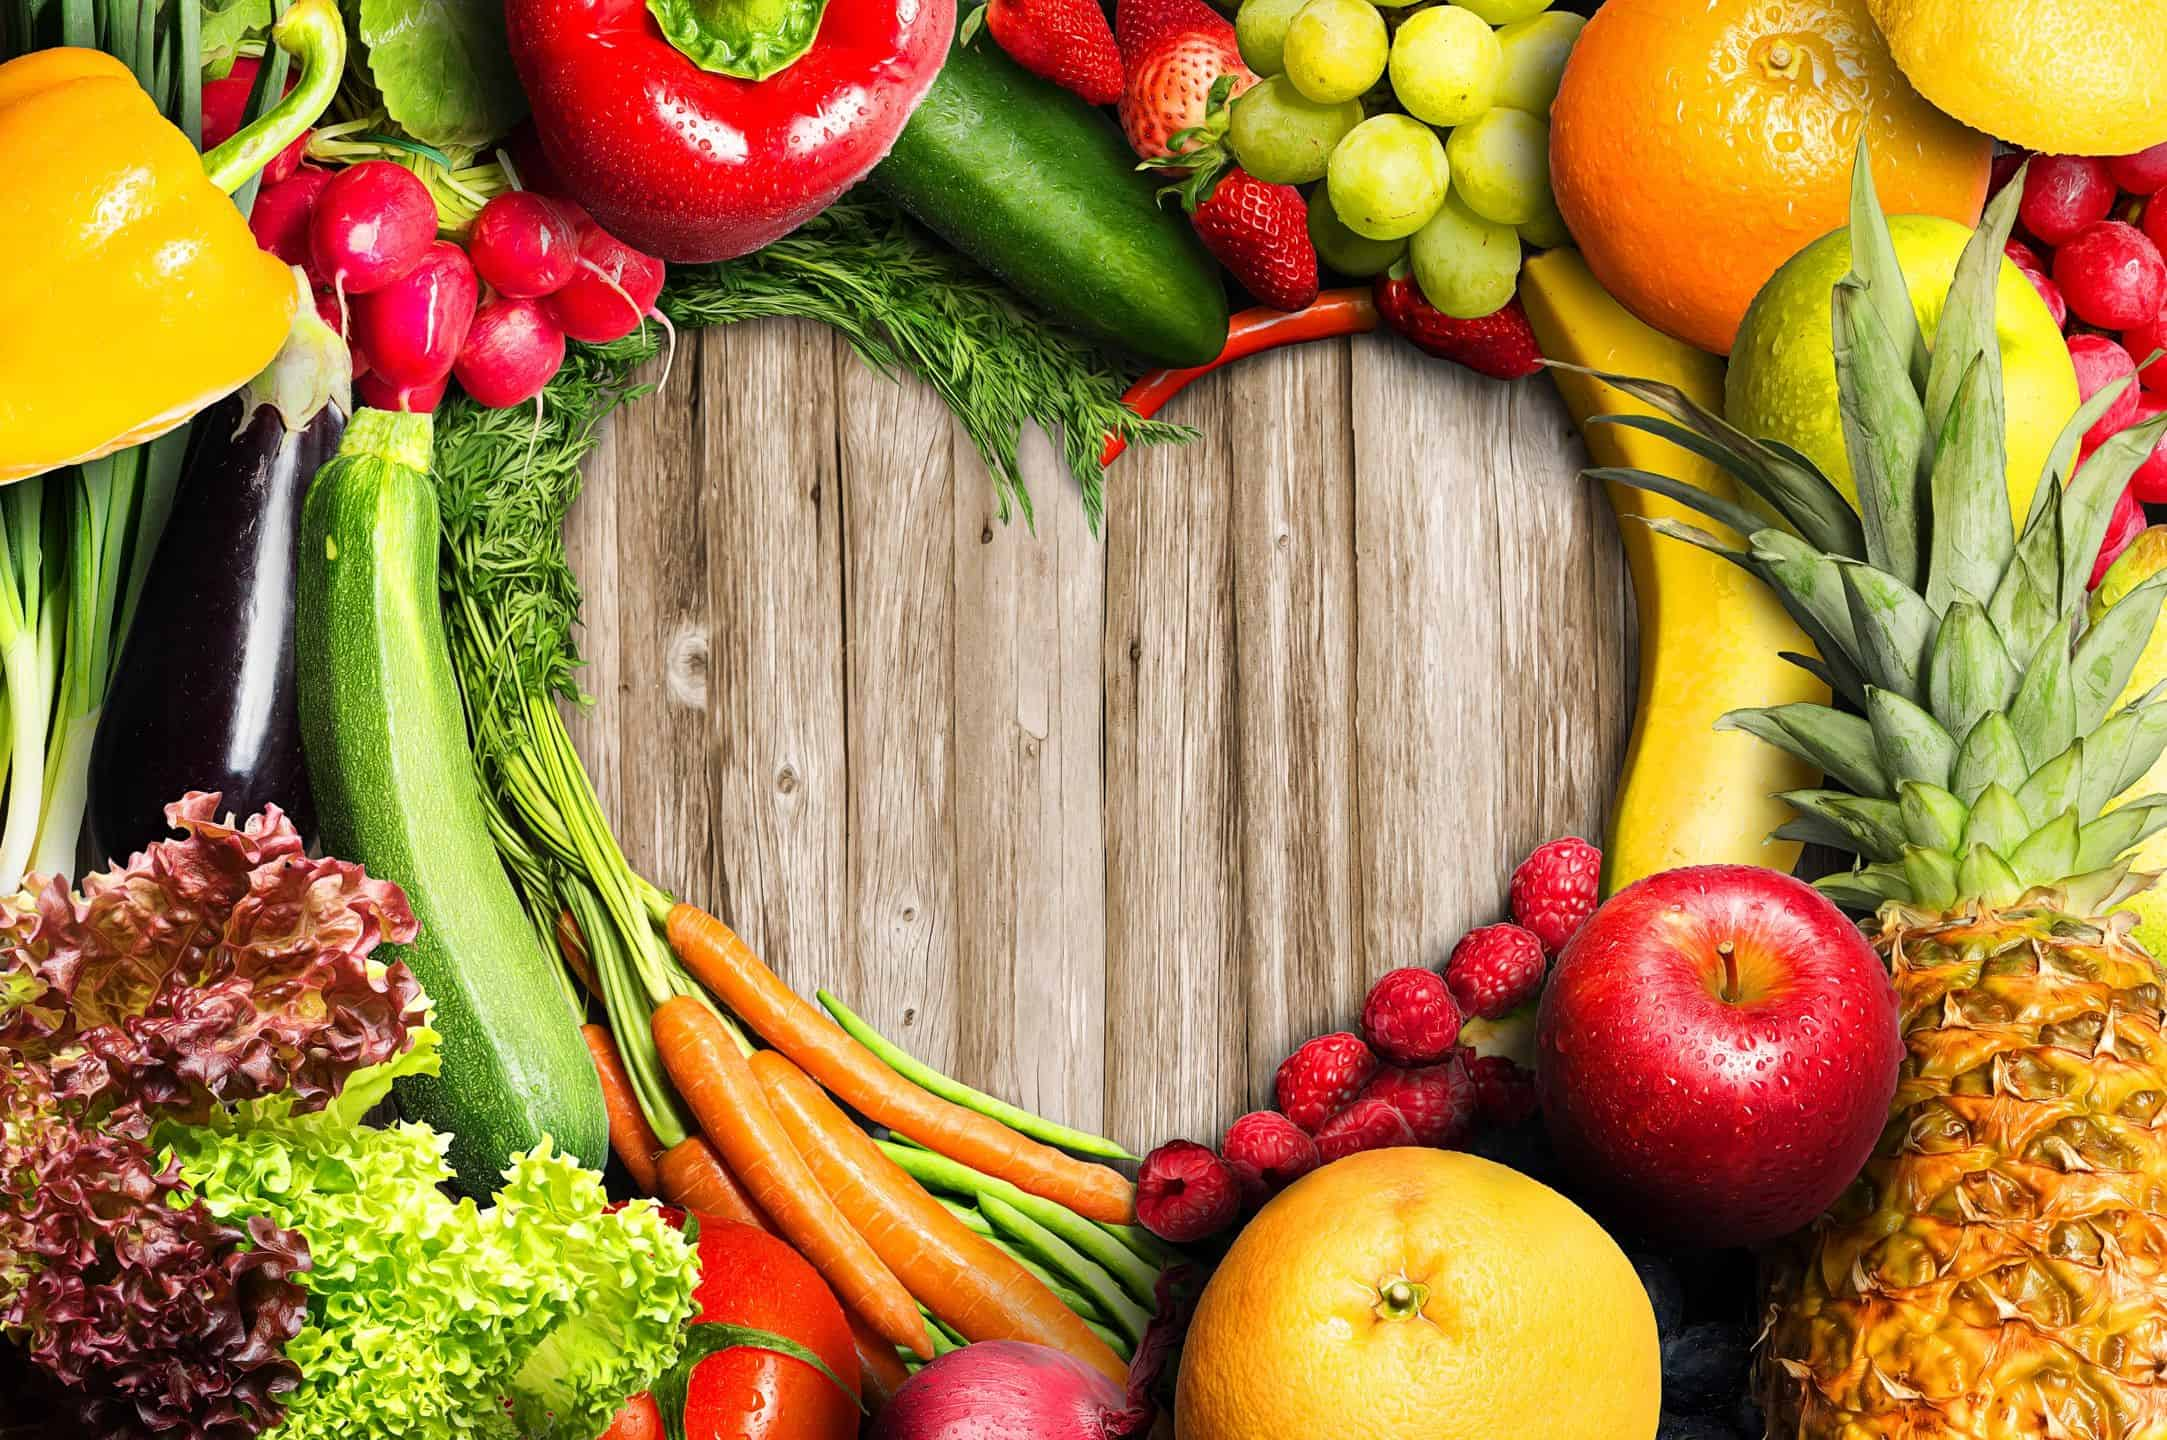 Diet Tips to Improve Heart Health- Try This Versus That @shawsimpleswaps Ask the RDN